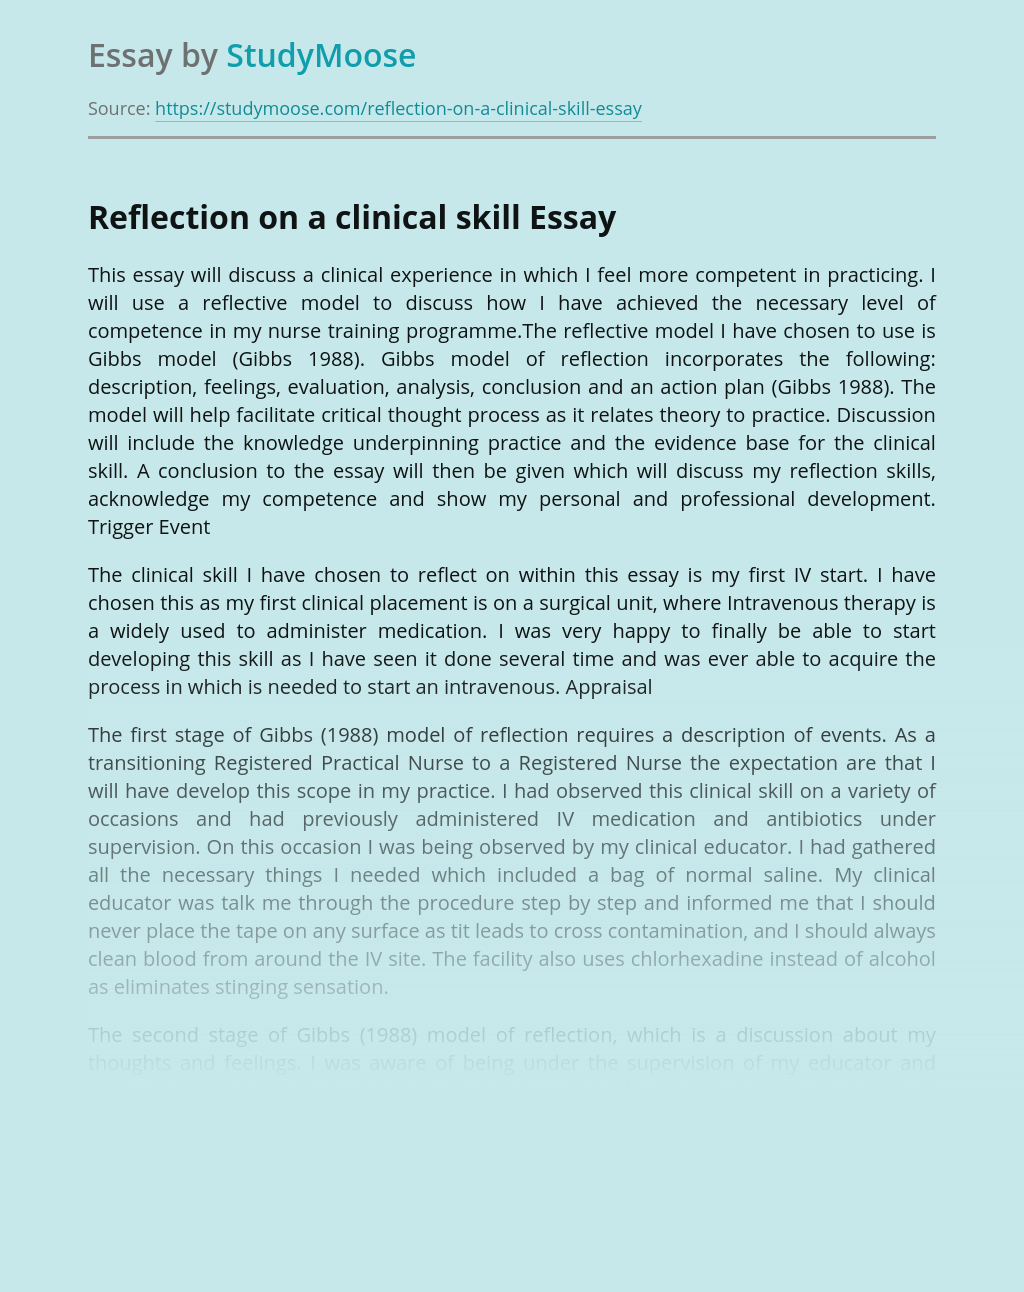 Reflection on a Clinical Skills and Nursing